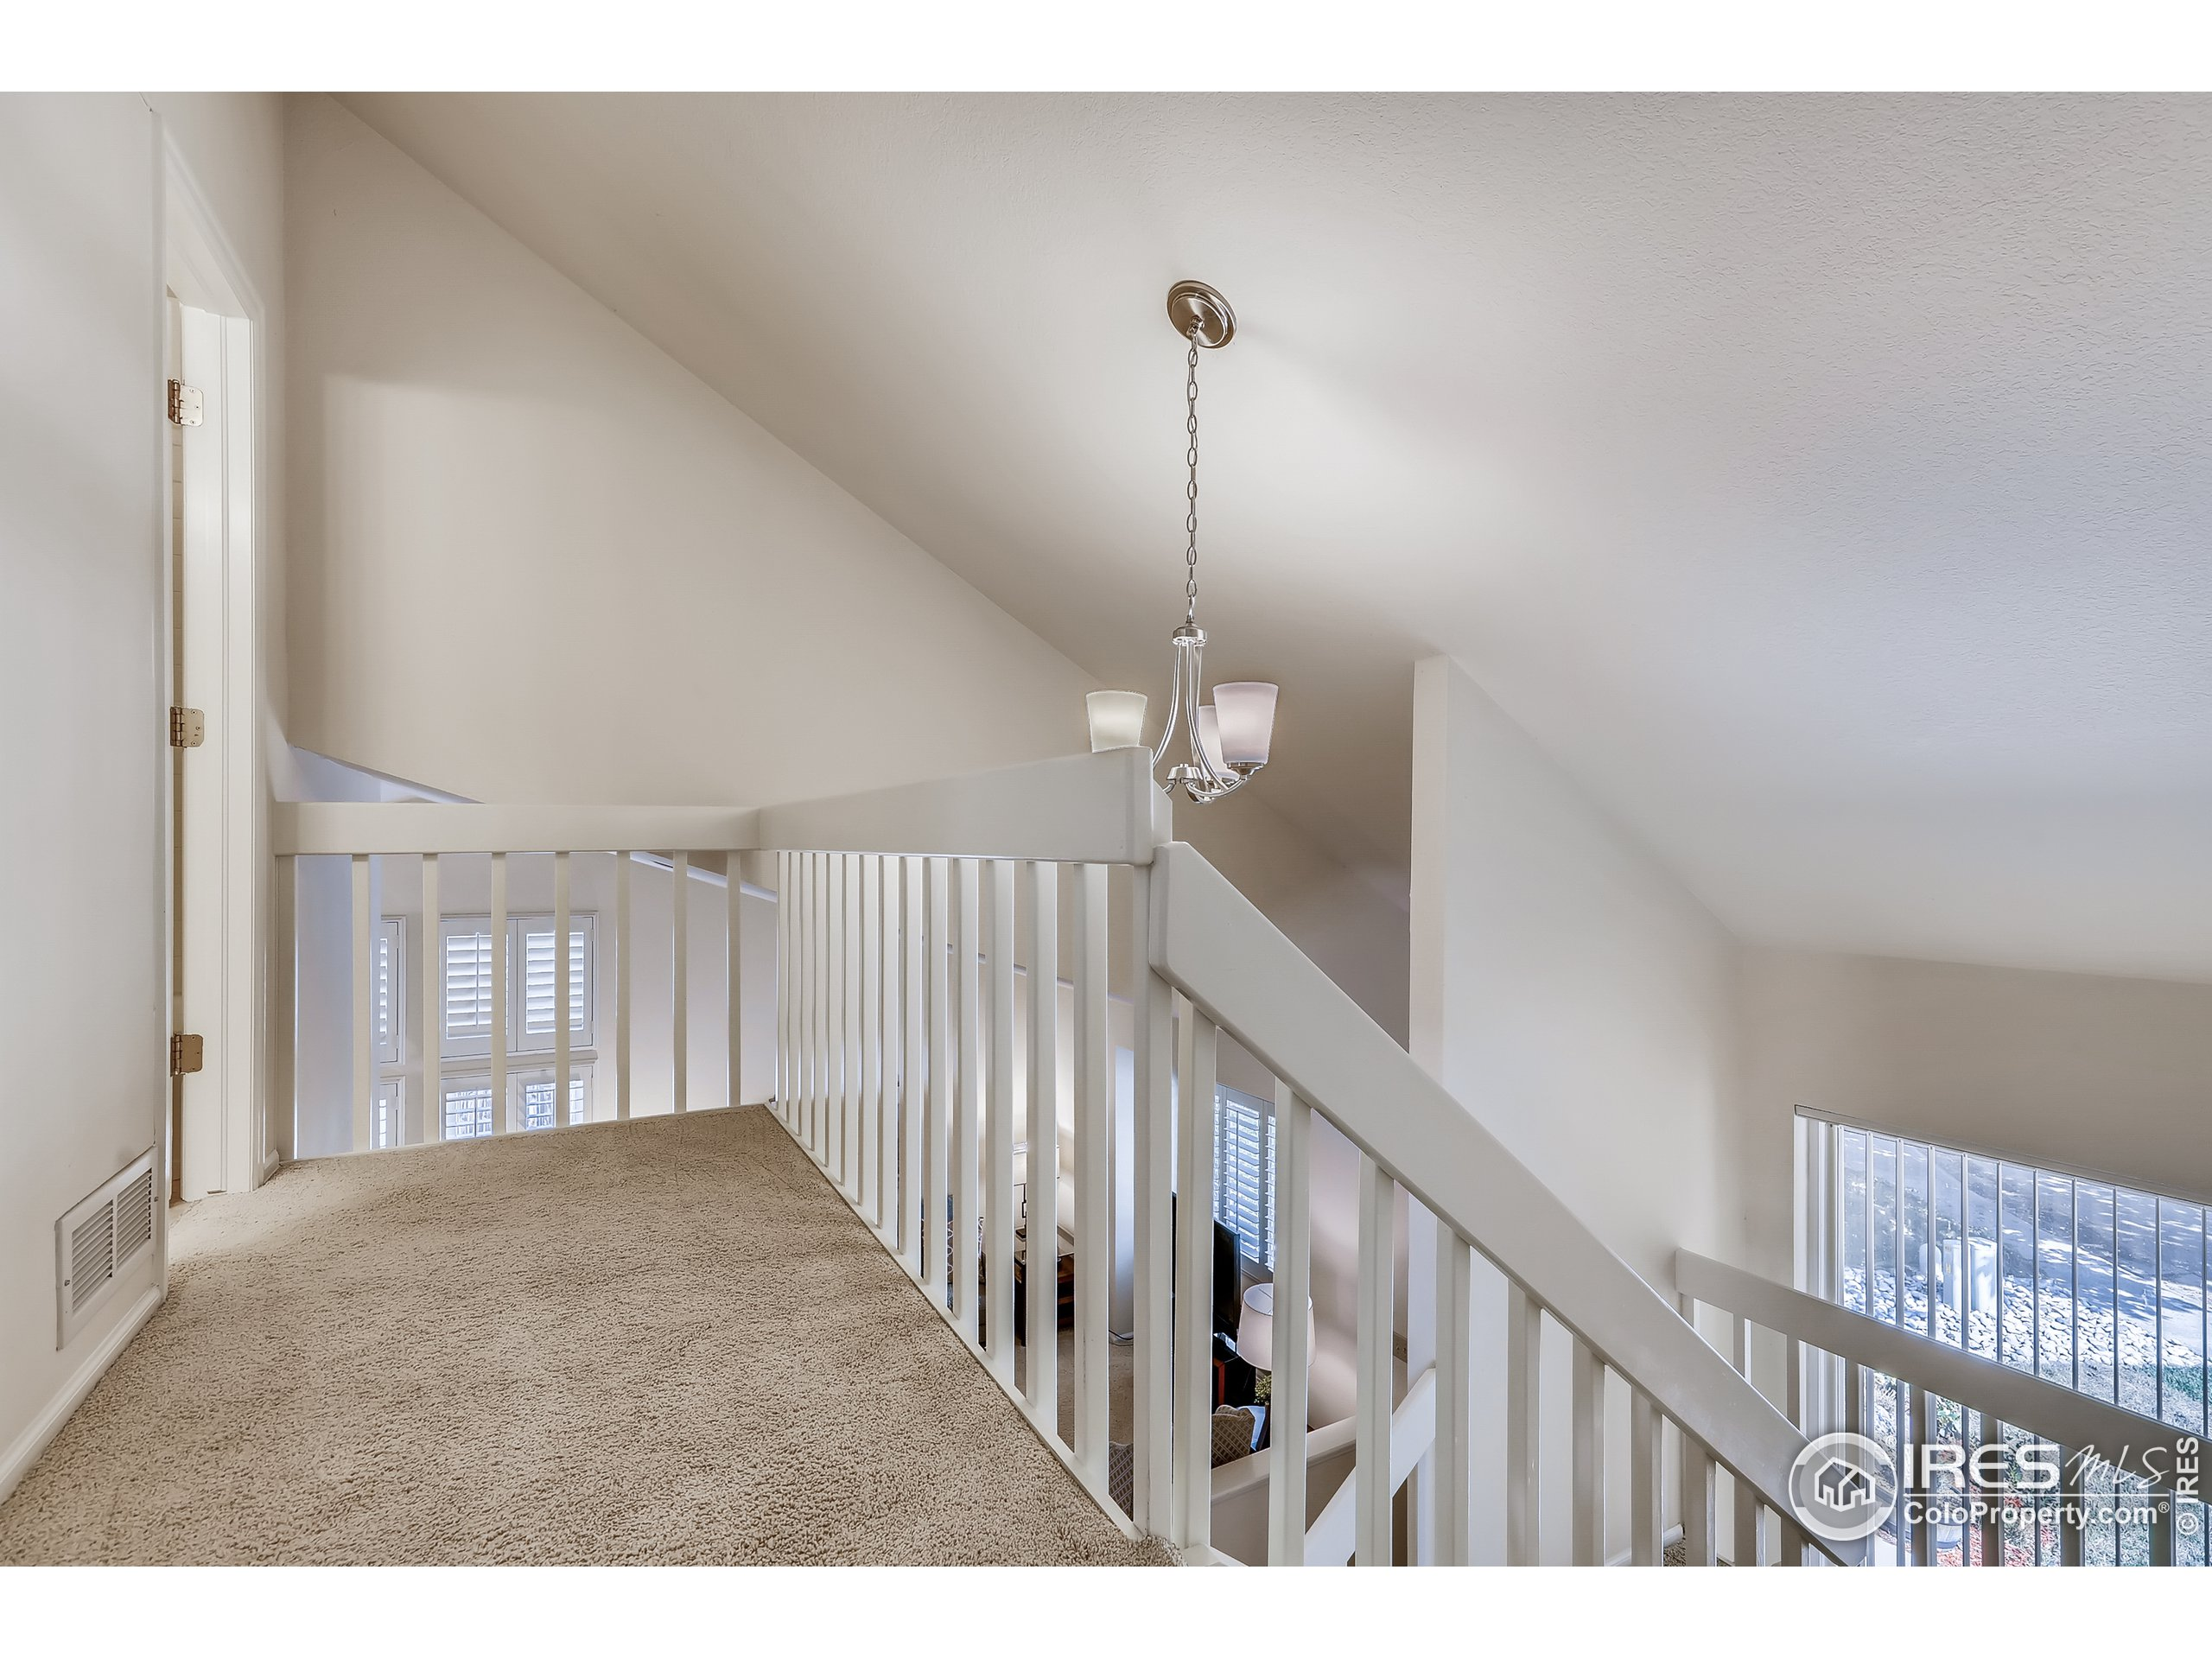 Upstairs landing featuring vaulted ceiling.